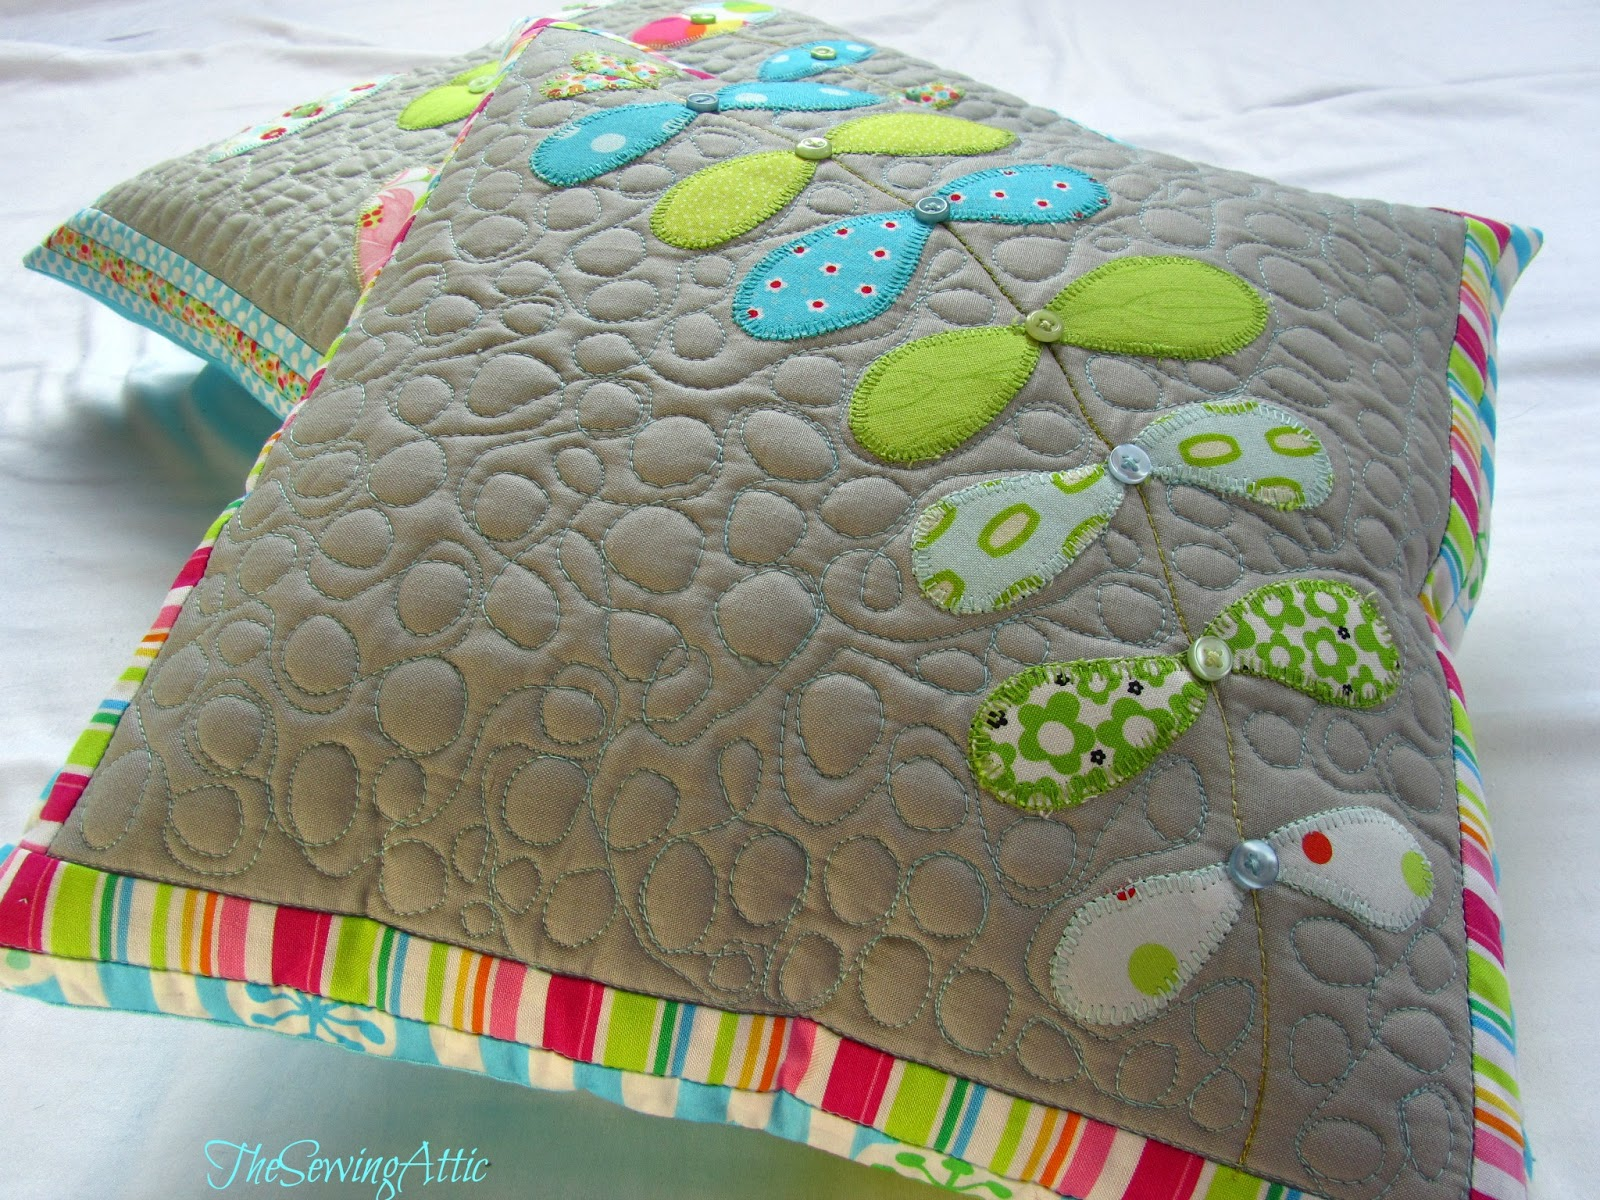 the sewing attic new cushion designs